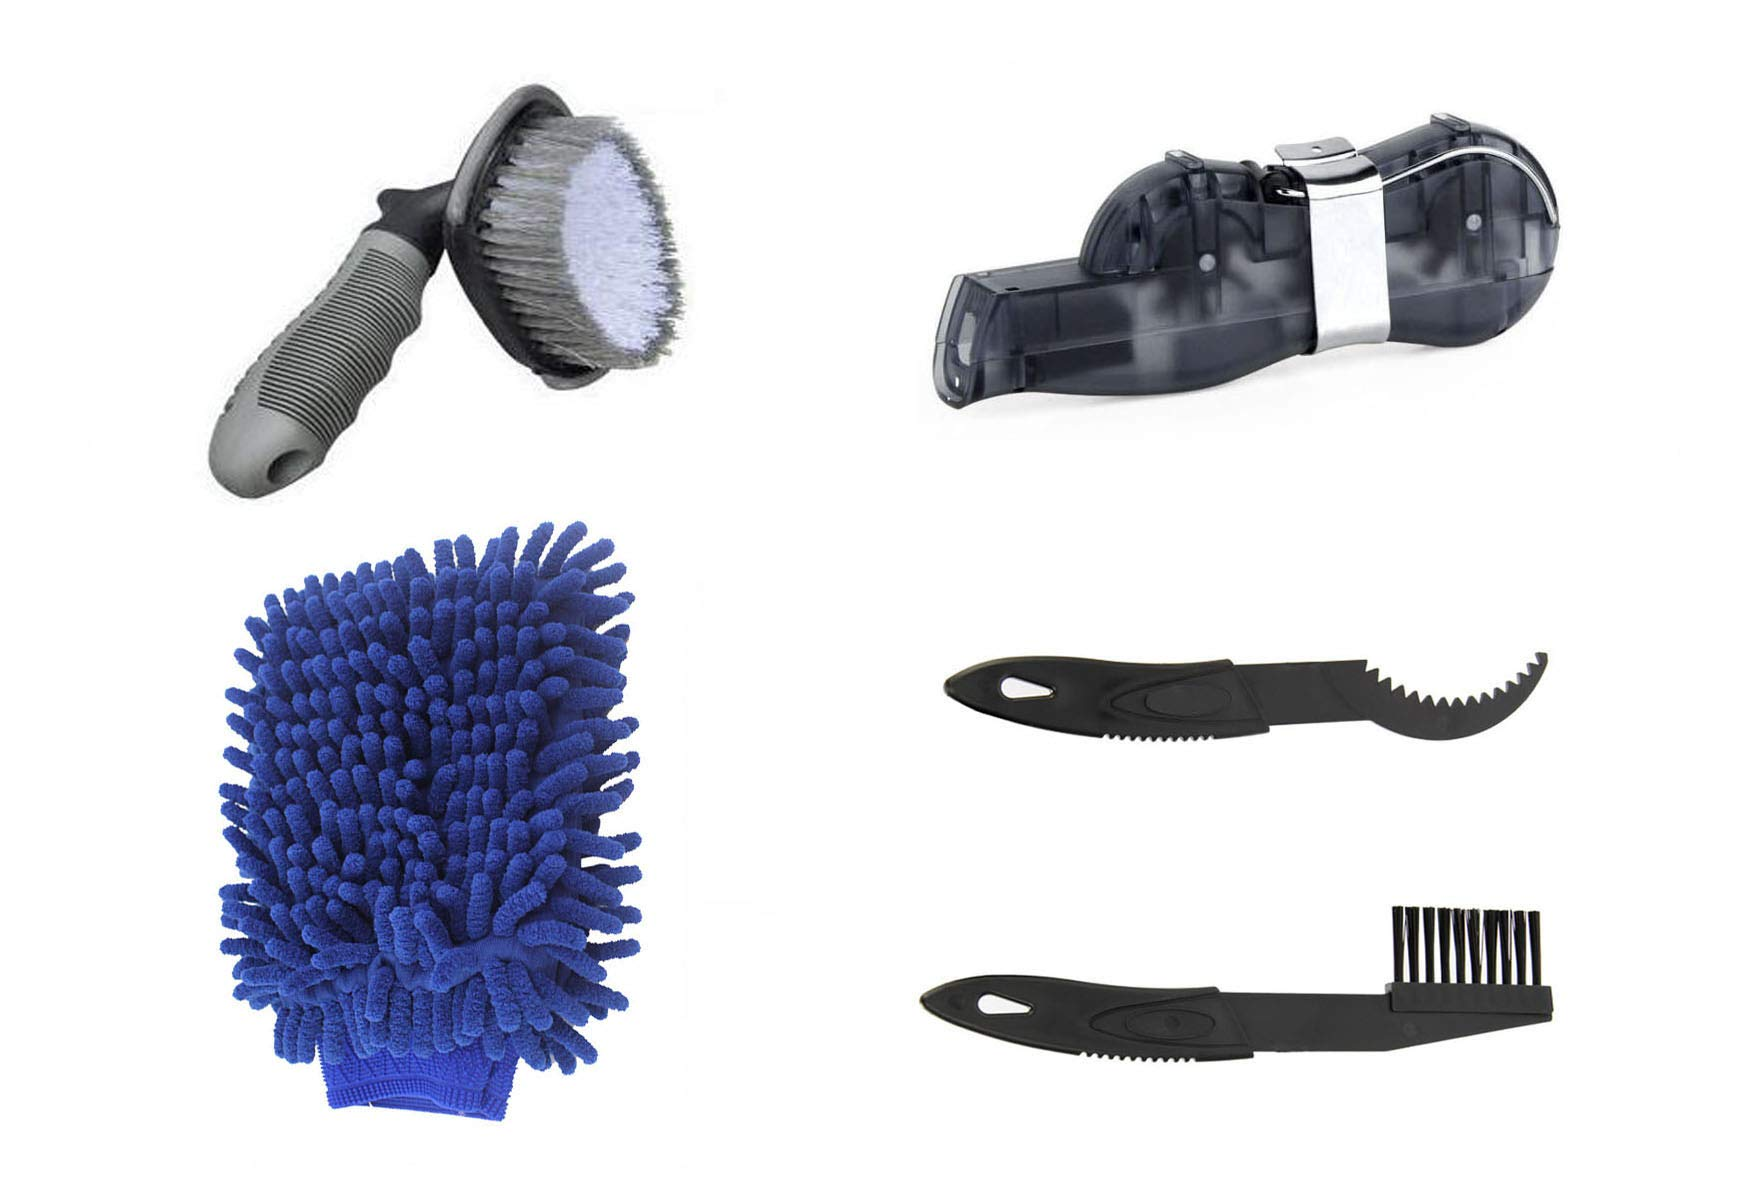 HAPTIME 5 Pcs Bicycle Clean Brush Kit/Cleaning Tools for Bike Chain/Crank/Tire/Sprocket Cycling Corner Stain Dirt